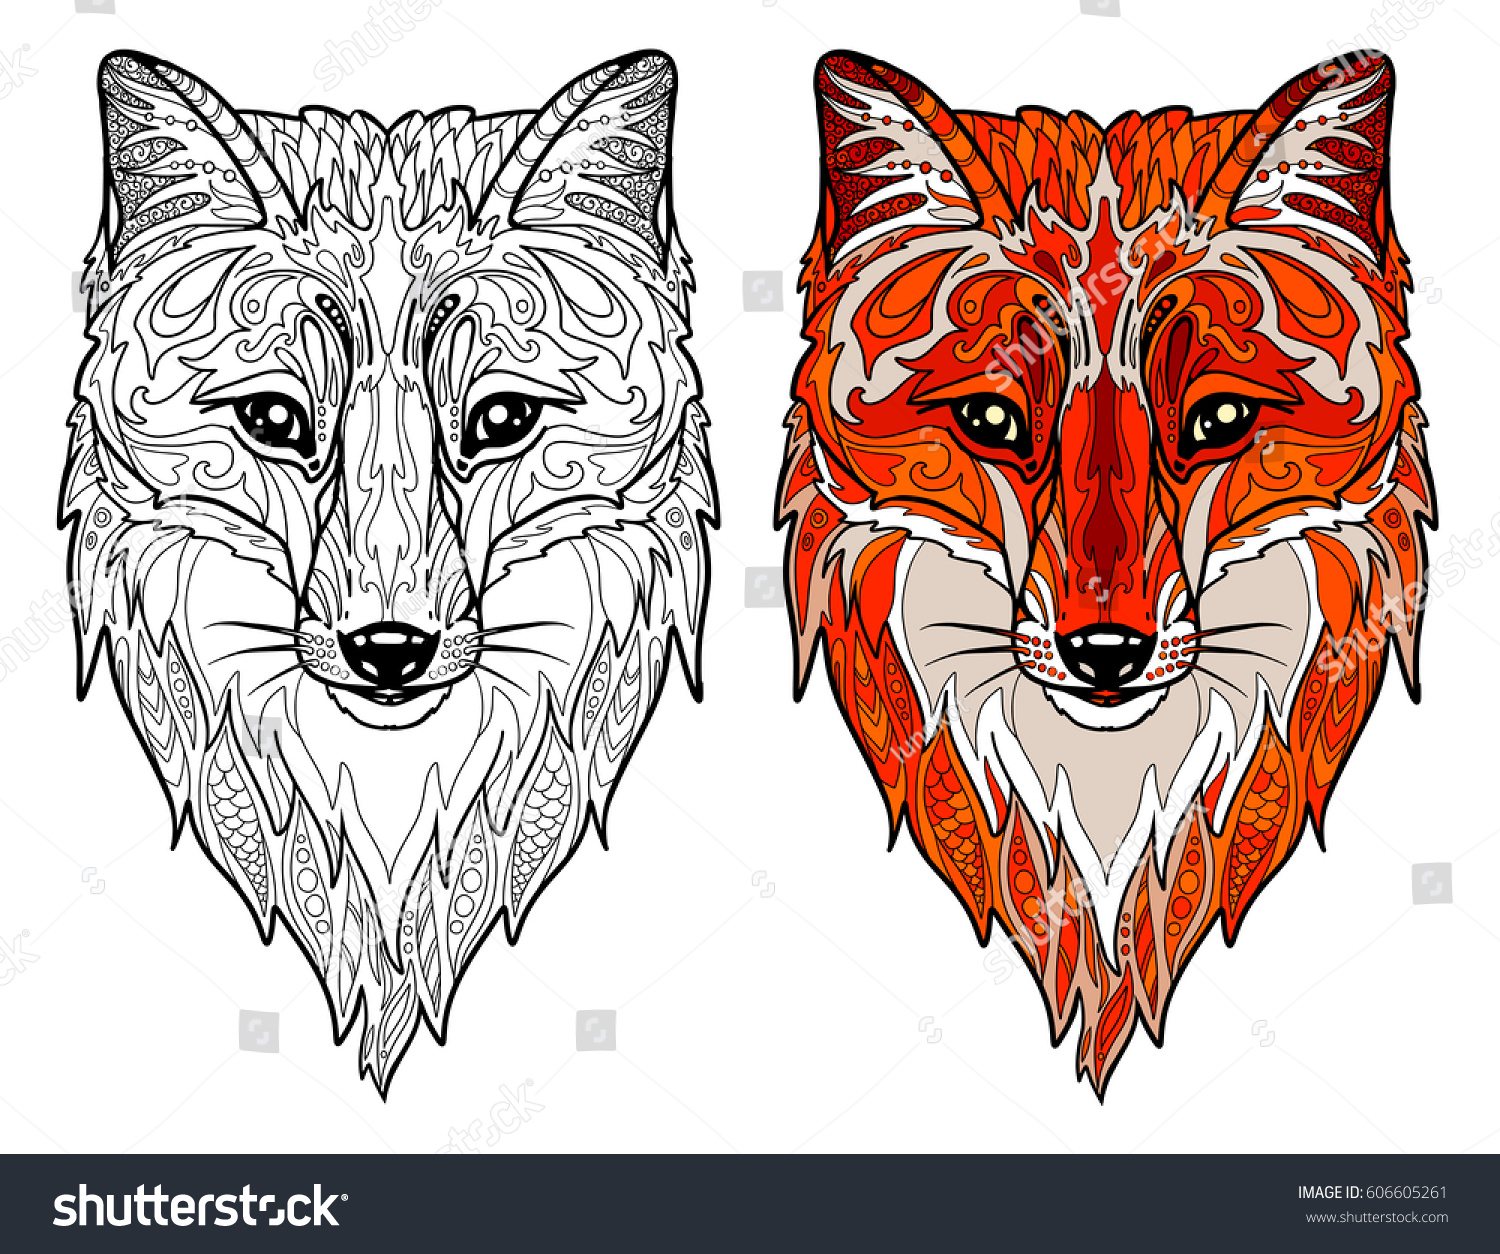 fox head doodle animal head for adult coloring book - Fox Coloring Book